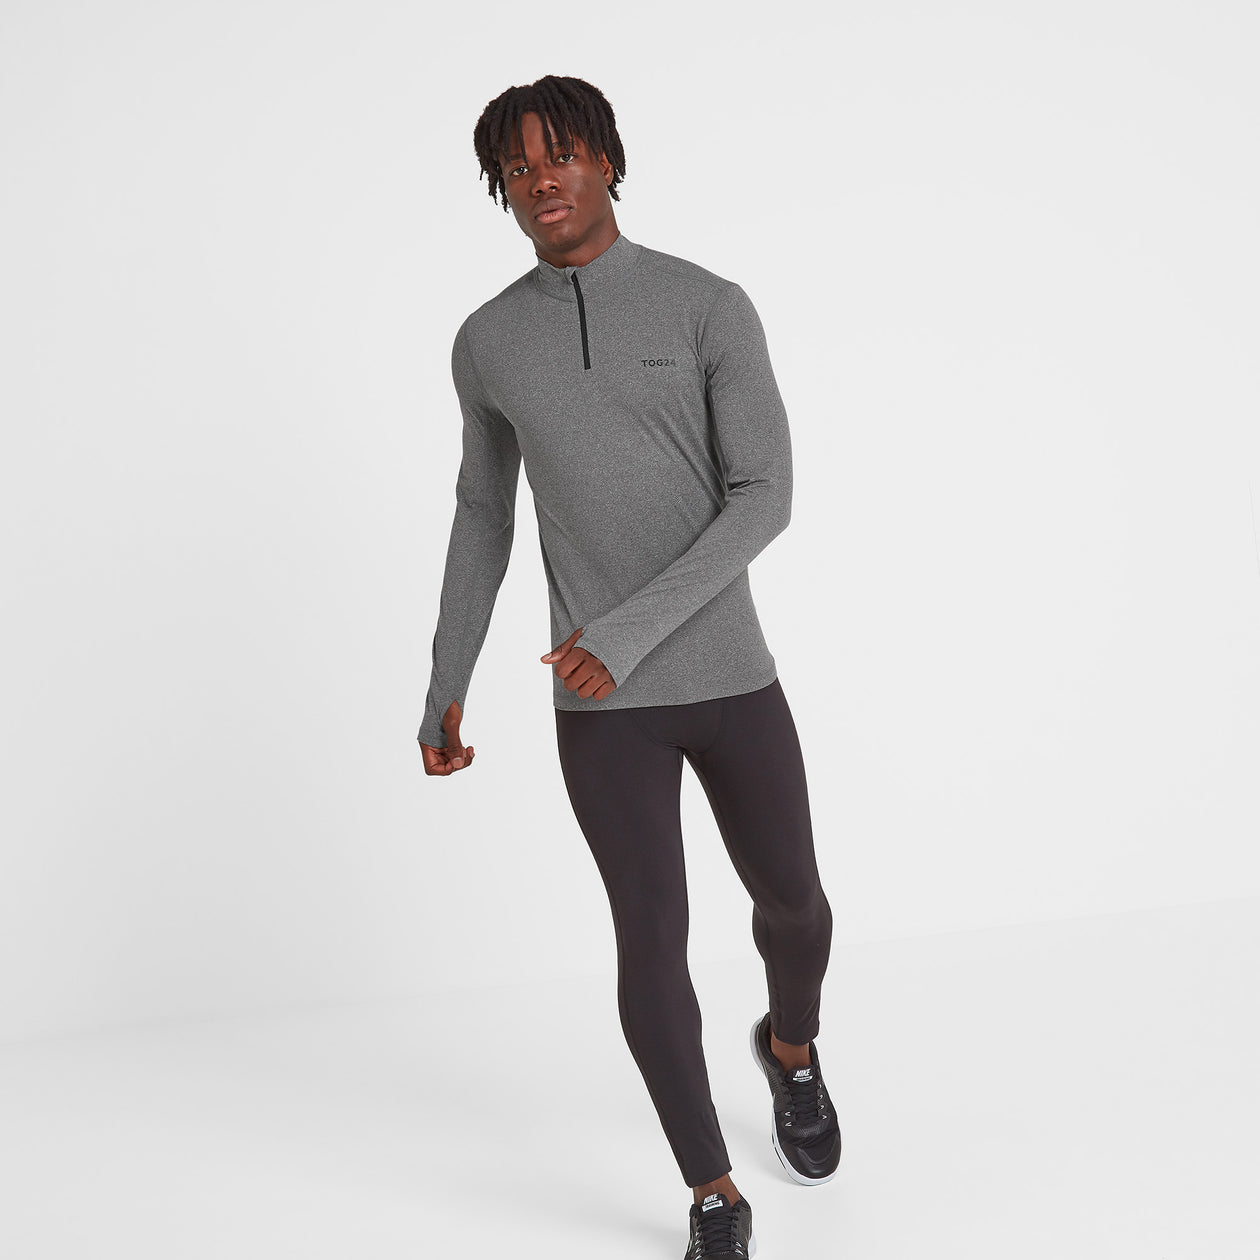 Snowdon Mens Thermal Zip Neck - Grey Marl image 4